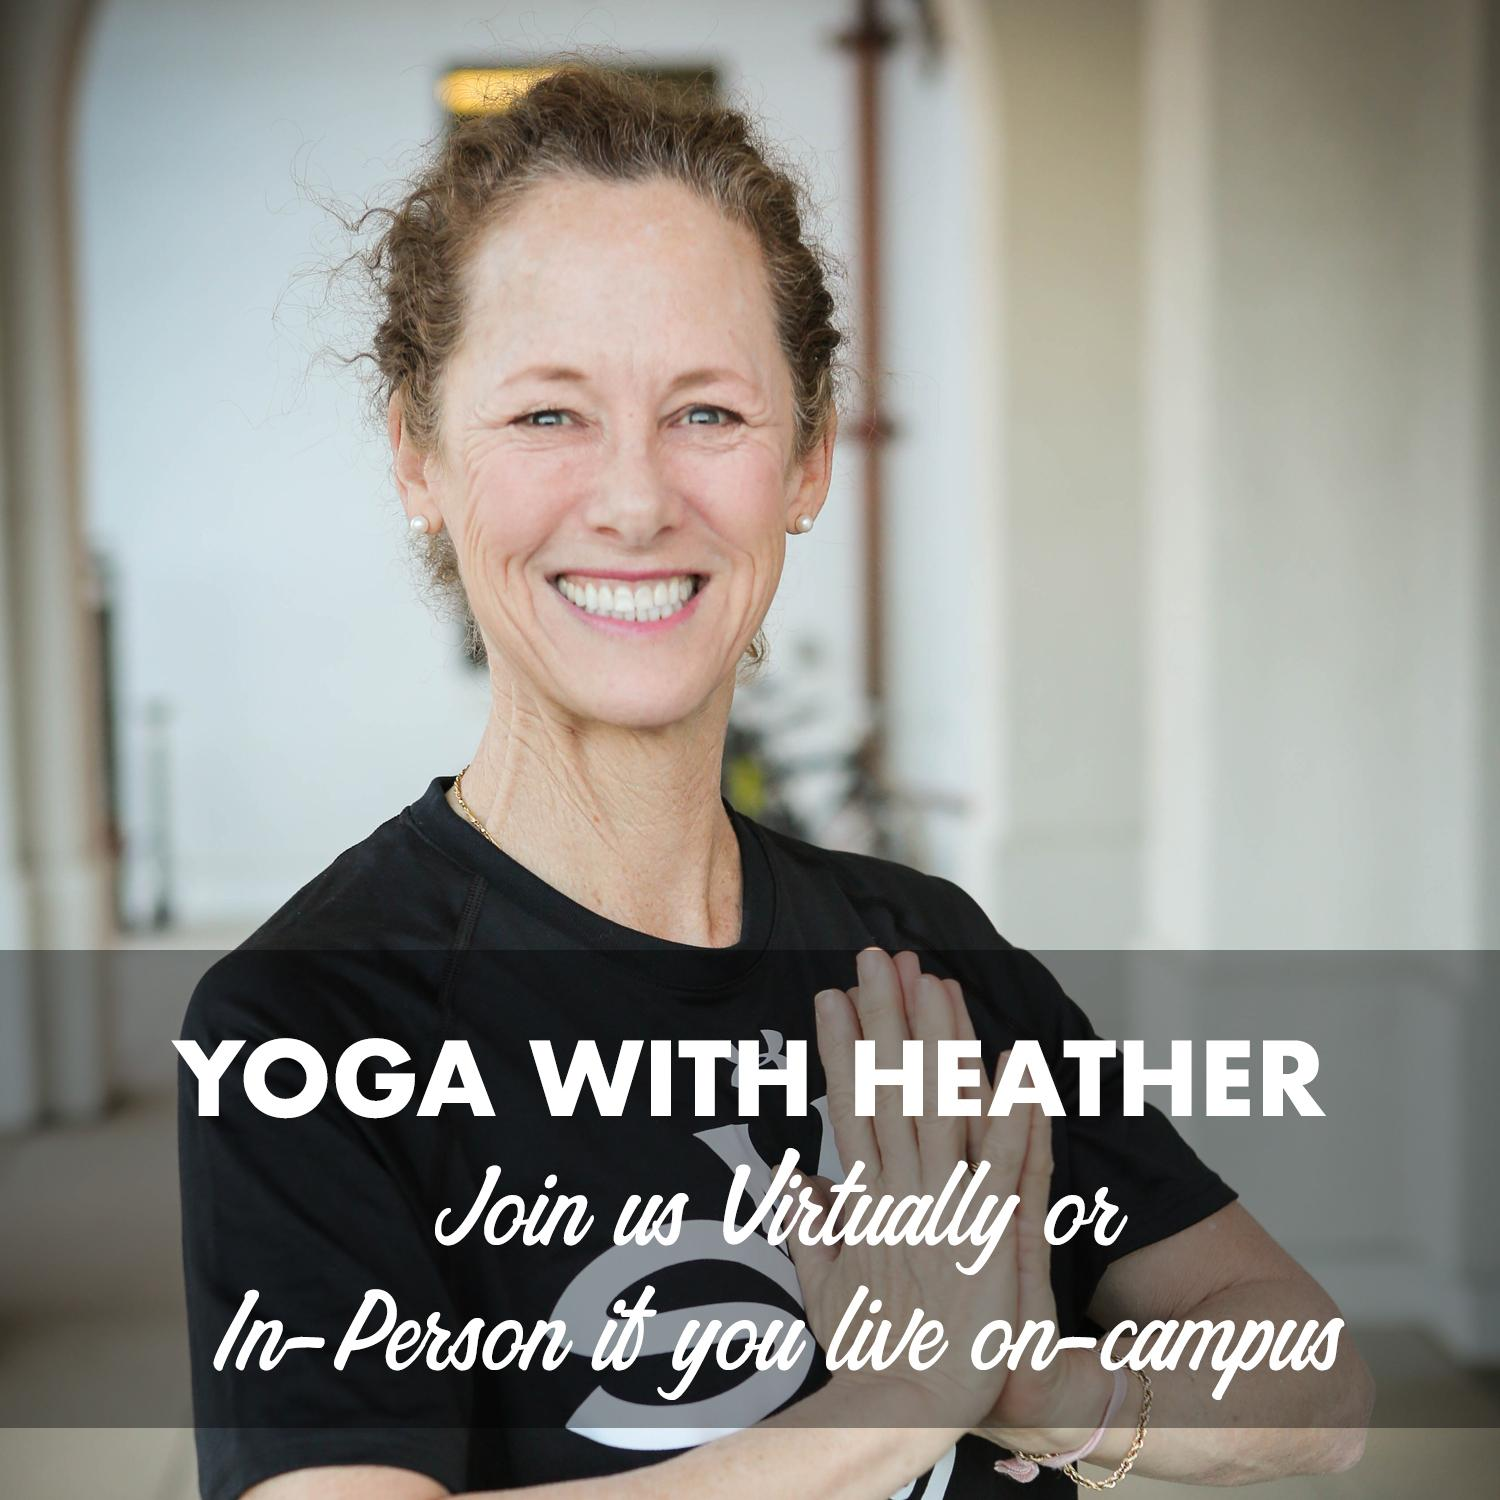 Yoga with Heather